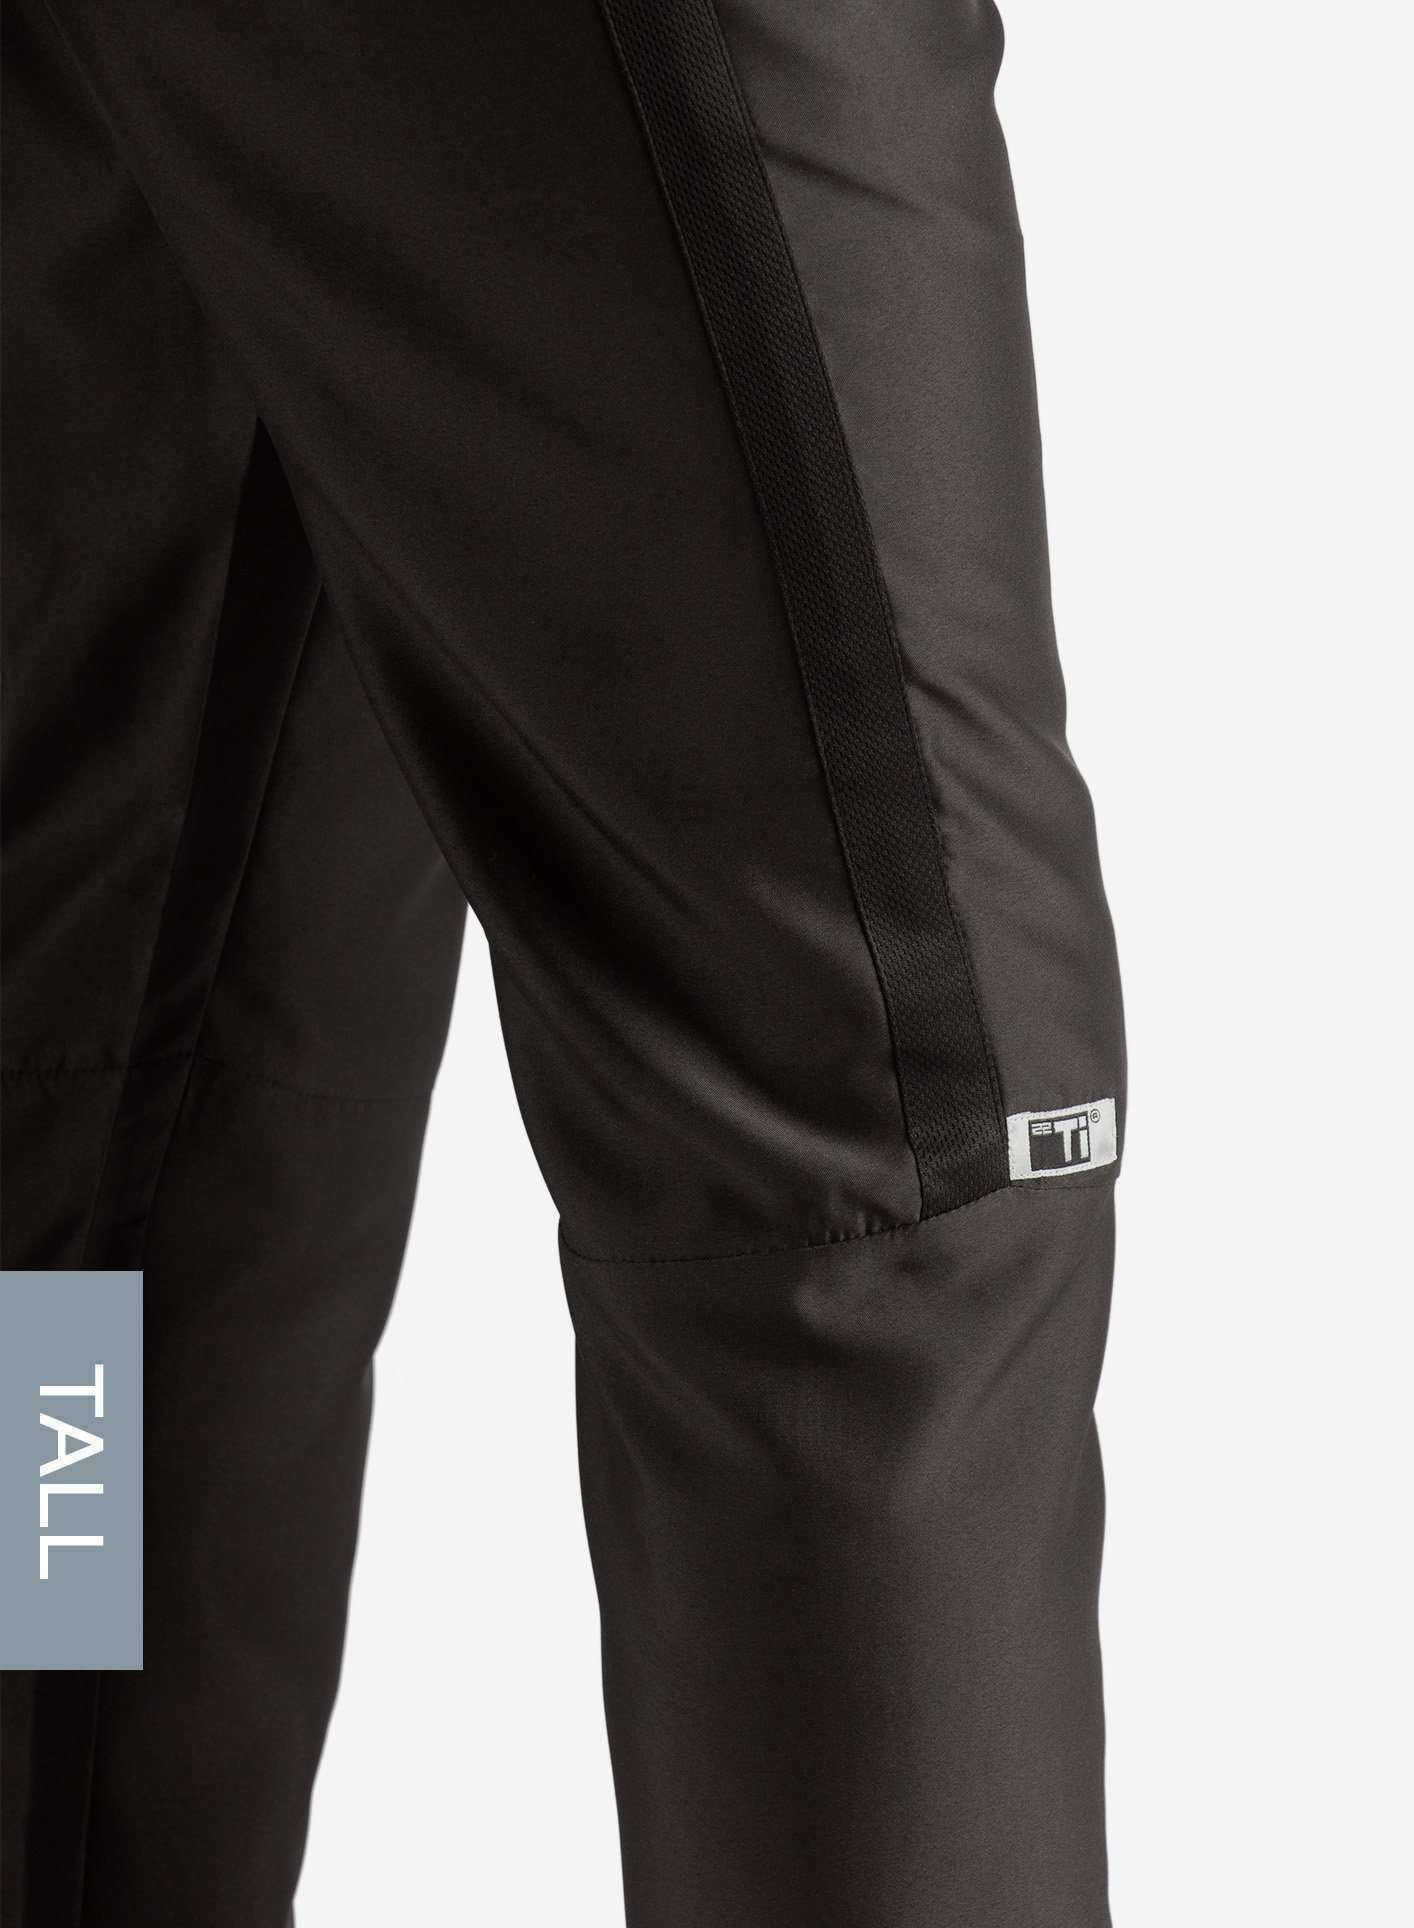 Men's Tall Slim Fit Scrub Pants in Real Black Side View